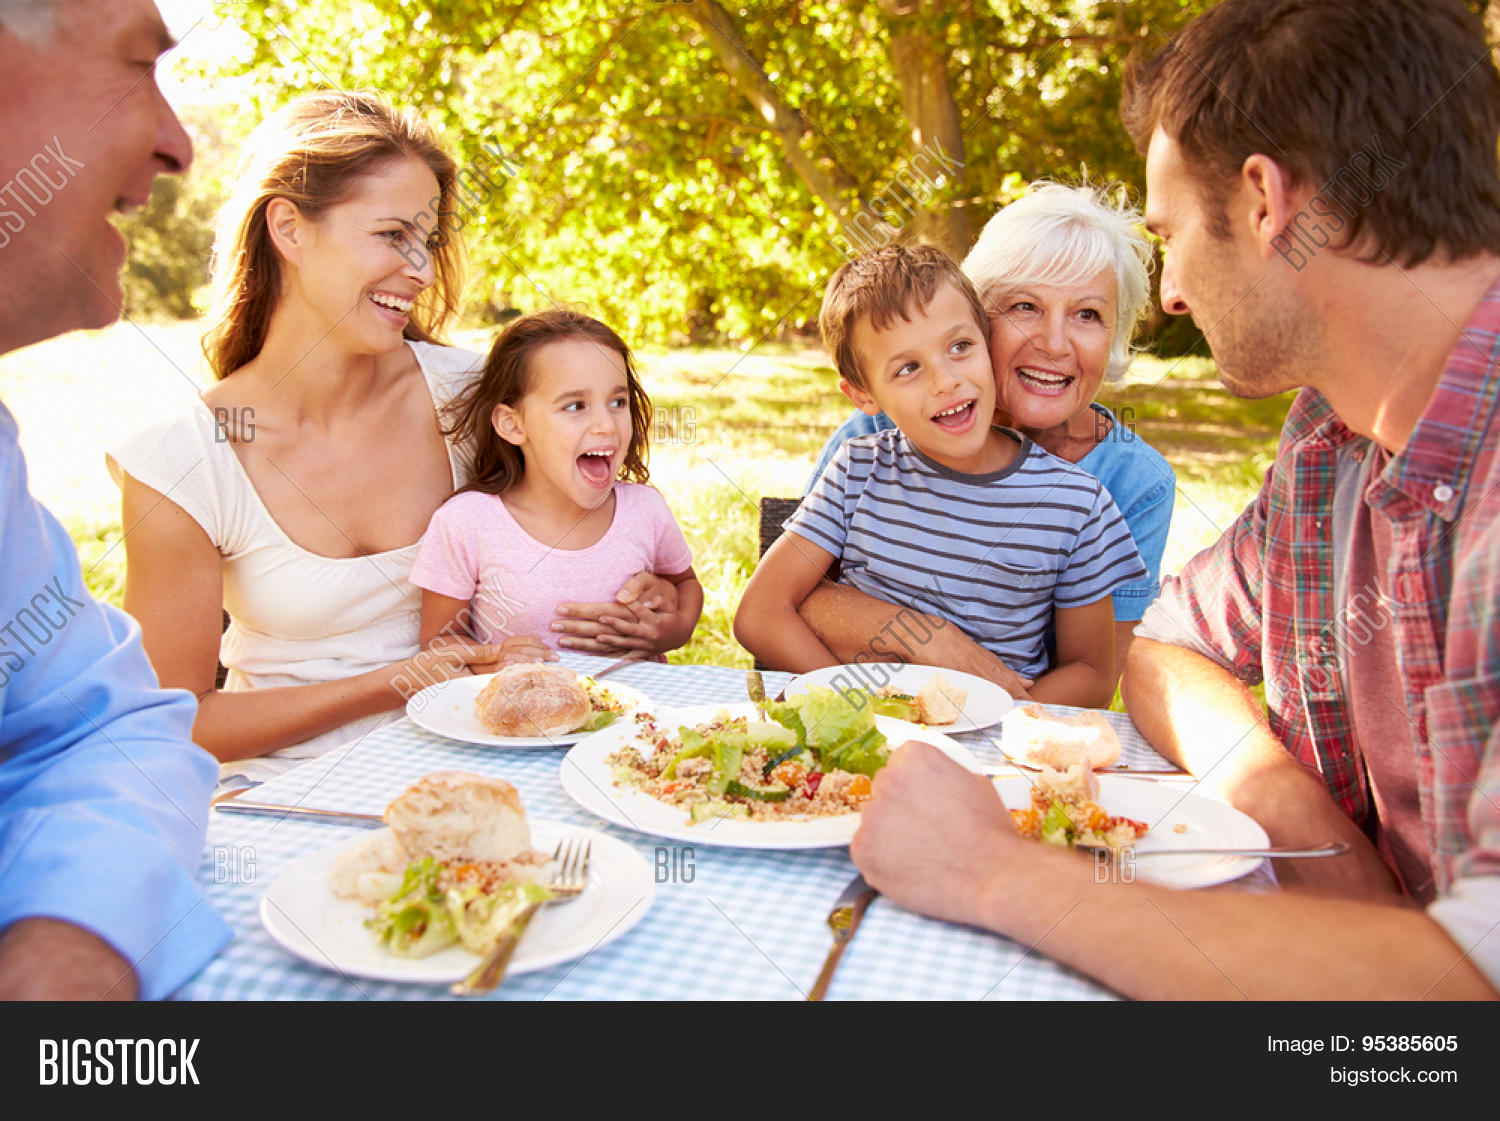 eating together Benefits of eating together posted on january 12th, 2015 by chips restaurants when was the last time you and your family sat down and dined together.